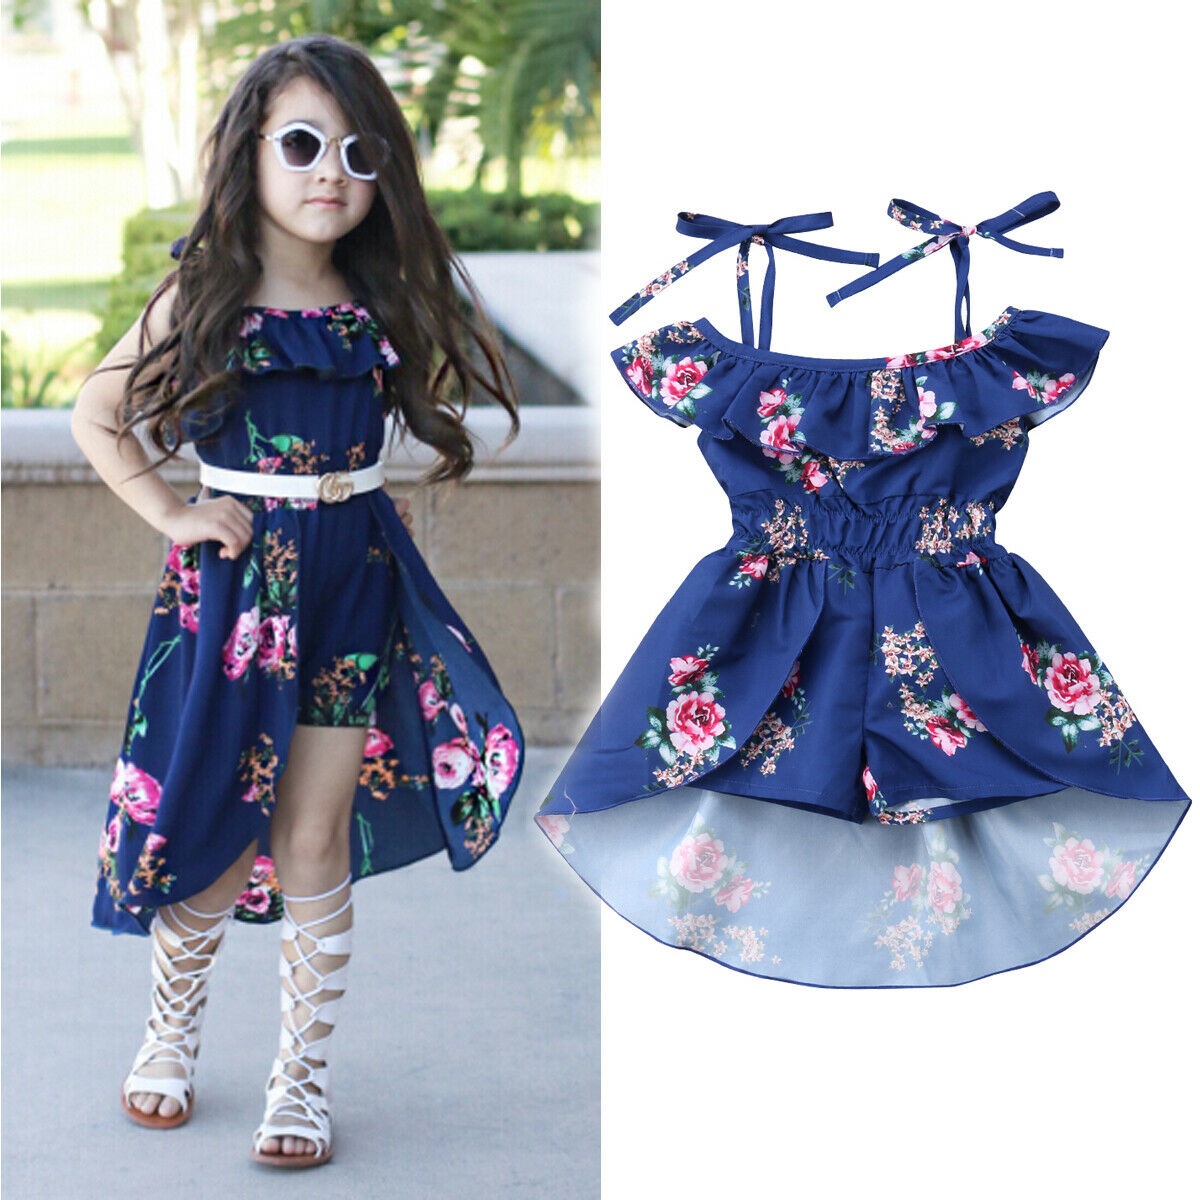 Newest Fashion Toddler Baby Girl Clothes Flower Print Strap Rompers Jumpsuit Swallow Tail Skirt One-Piece Outfit Summer Clothes